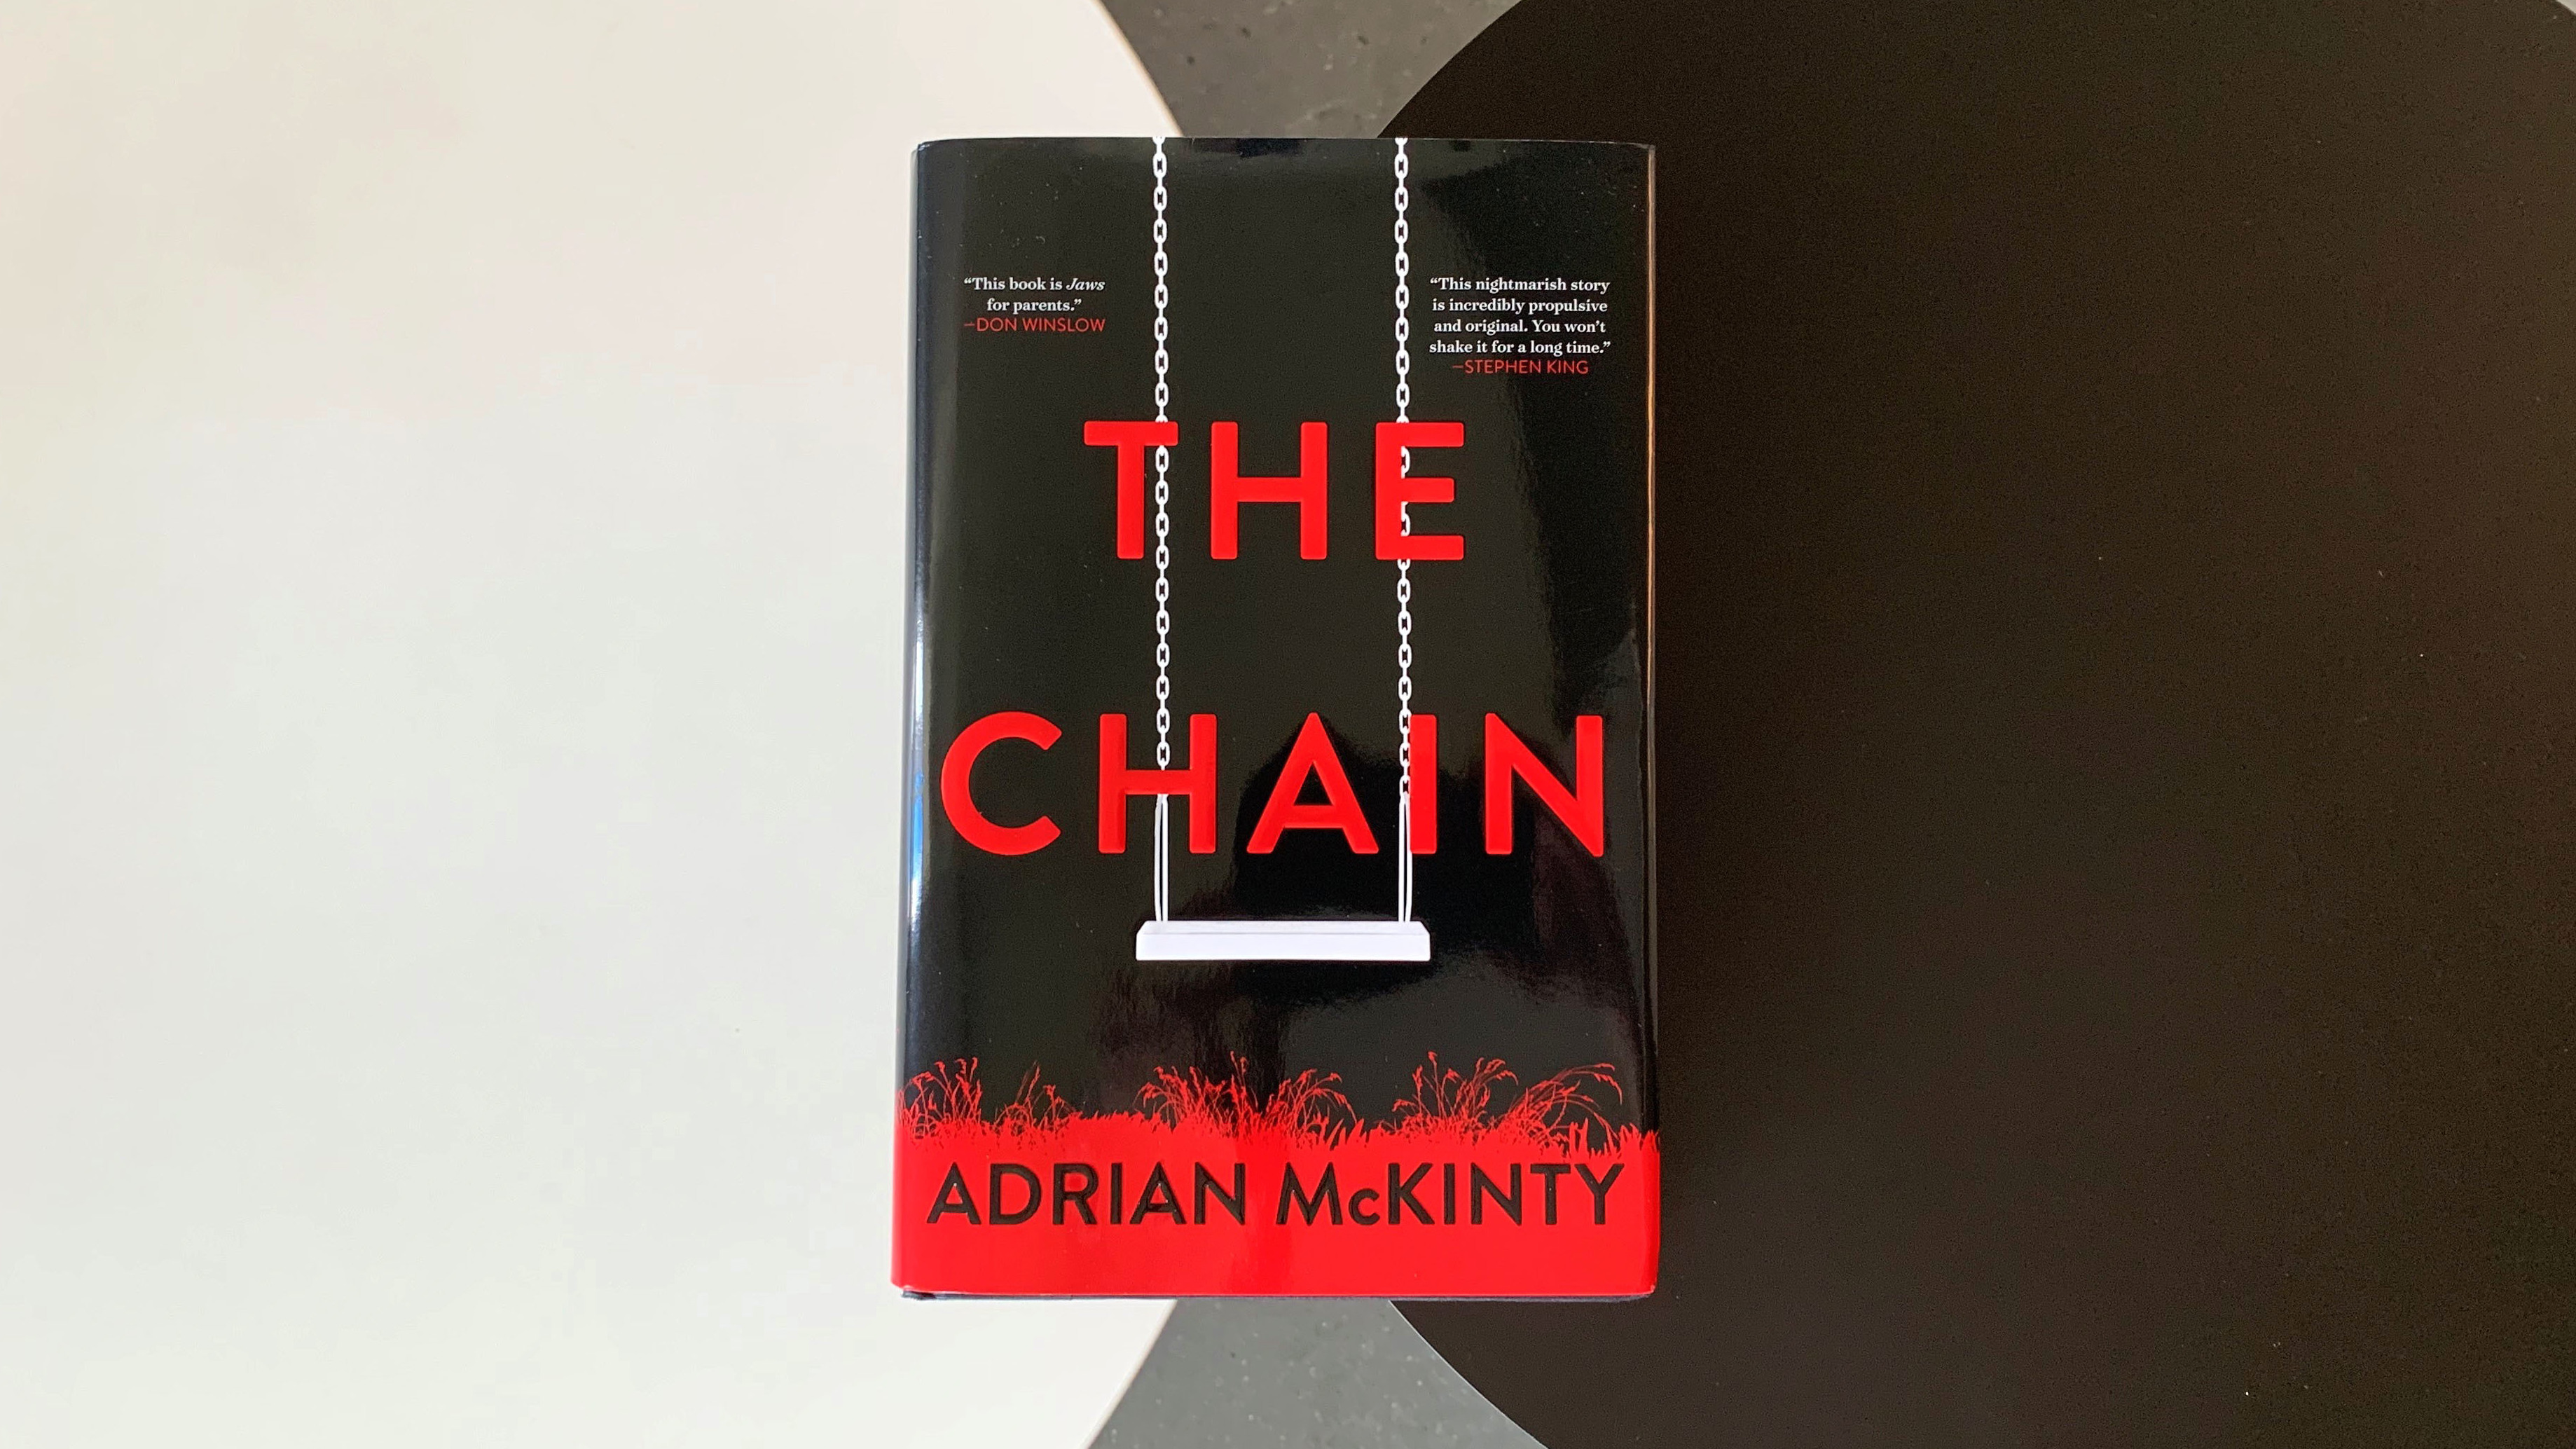 The Chain, by Adrian McKinty